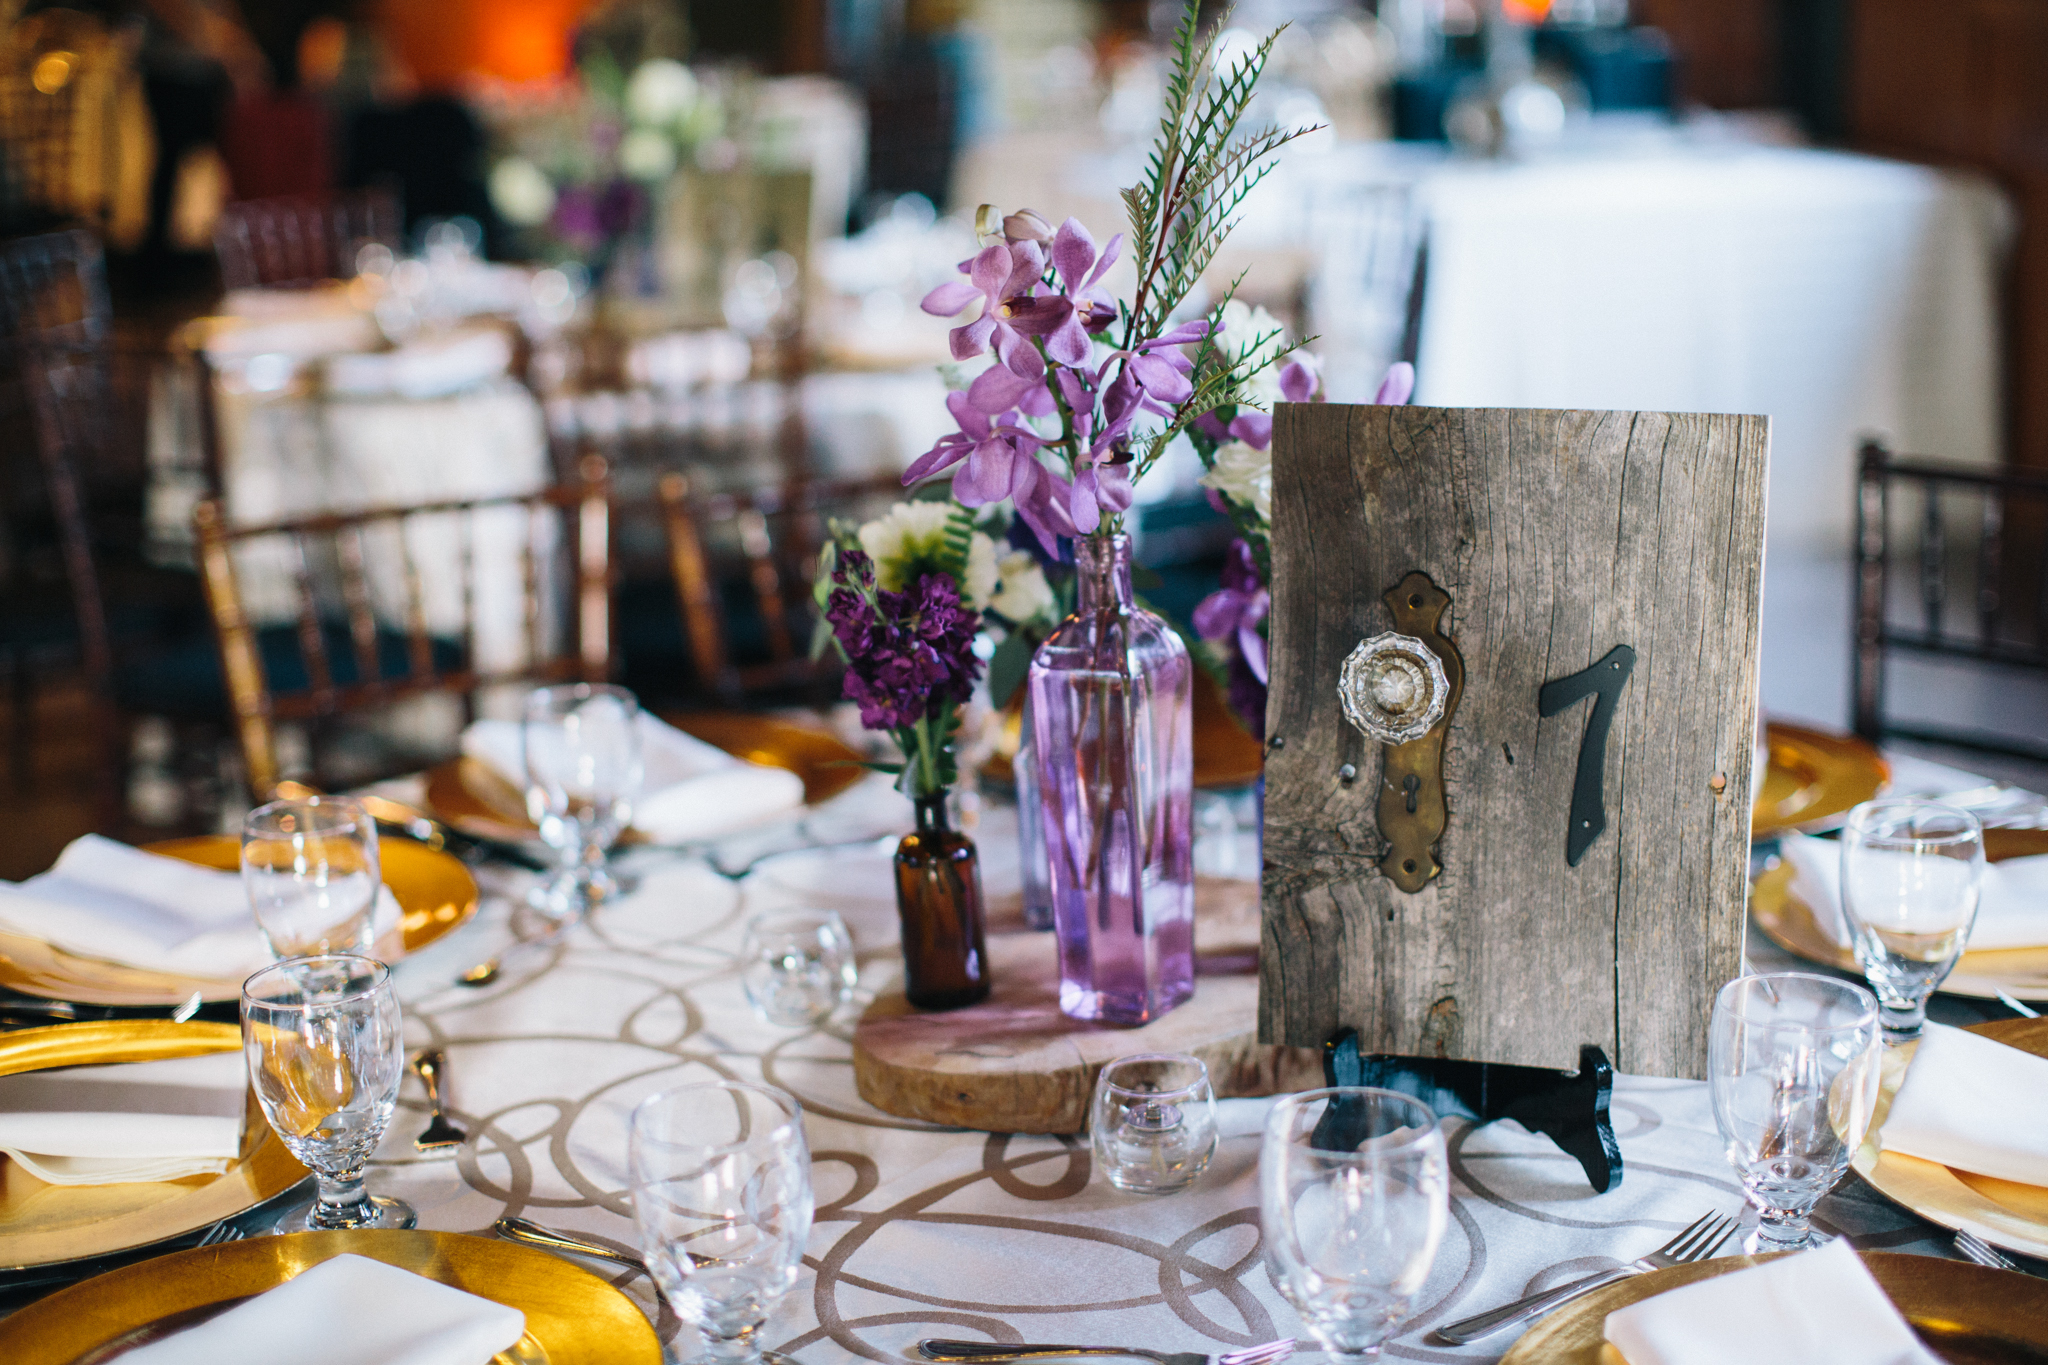 Wedding Table Numbers - DIY with reclaimed wood, antique doorknob, antique estcheons and numbers